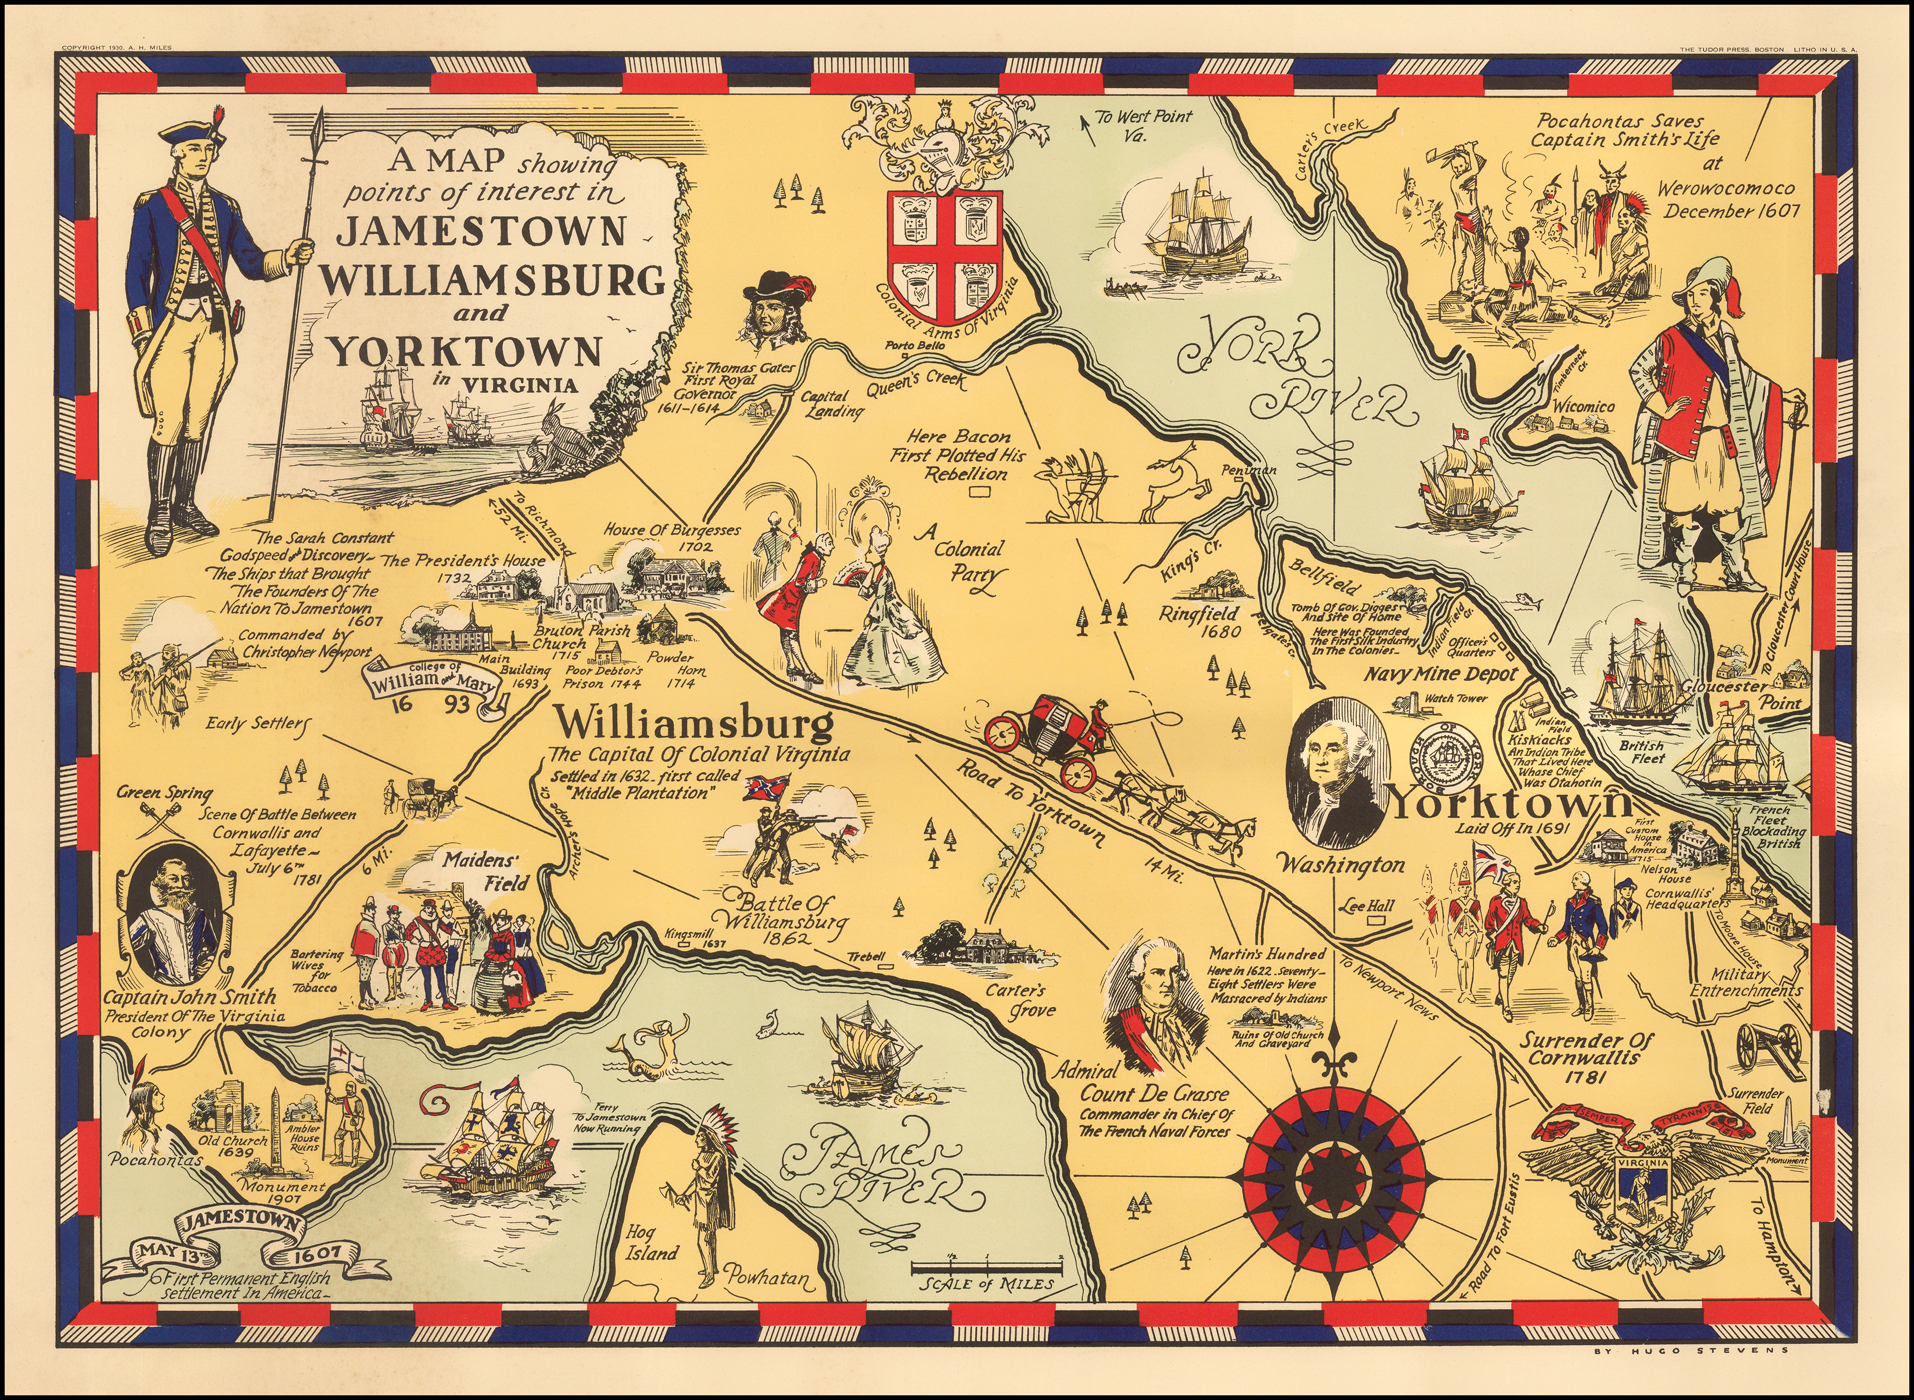 Map Of Yorktown Tx.A Map Showing Points Of Interest In Jamestown Williamsburg And